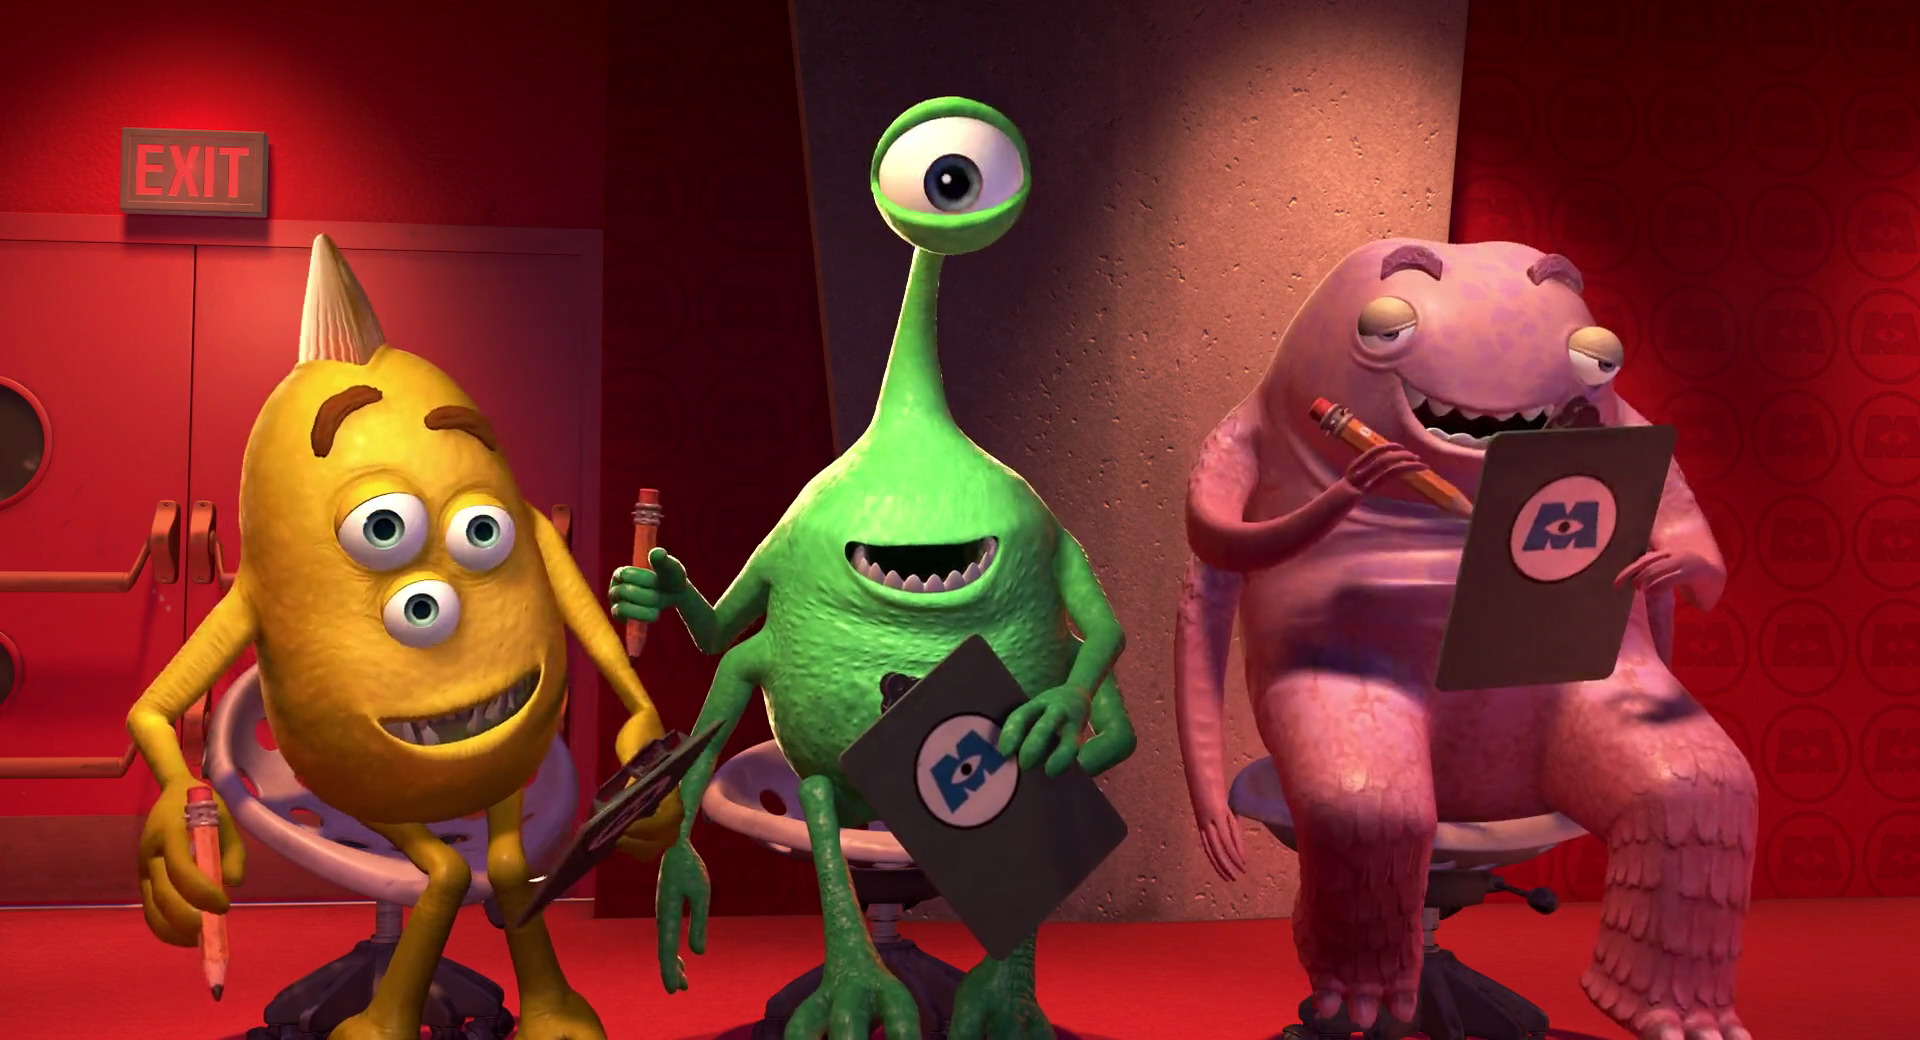 monsters inc animation analysis In 2001, walt disney pictures released the american computer-animated comedy film and the fourth film produced by pixar animation studios, monsters inc.